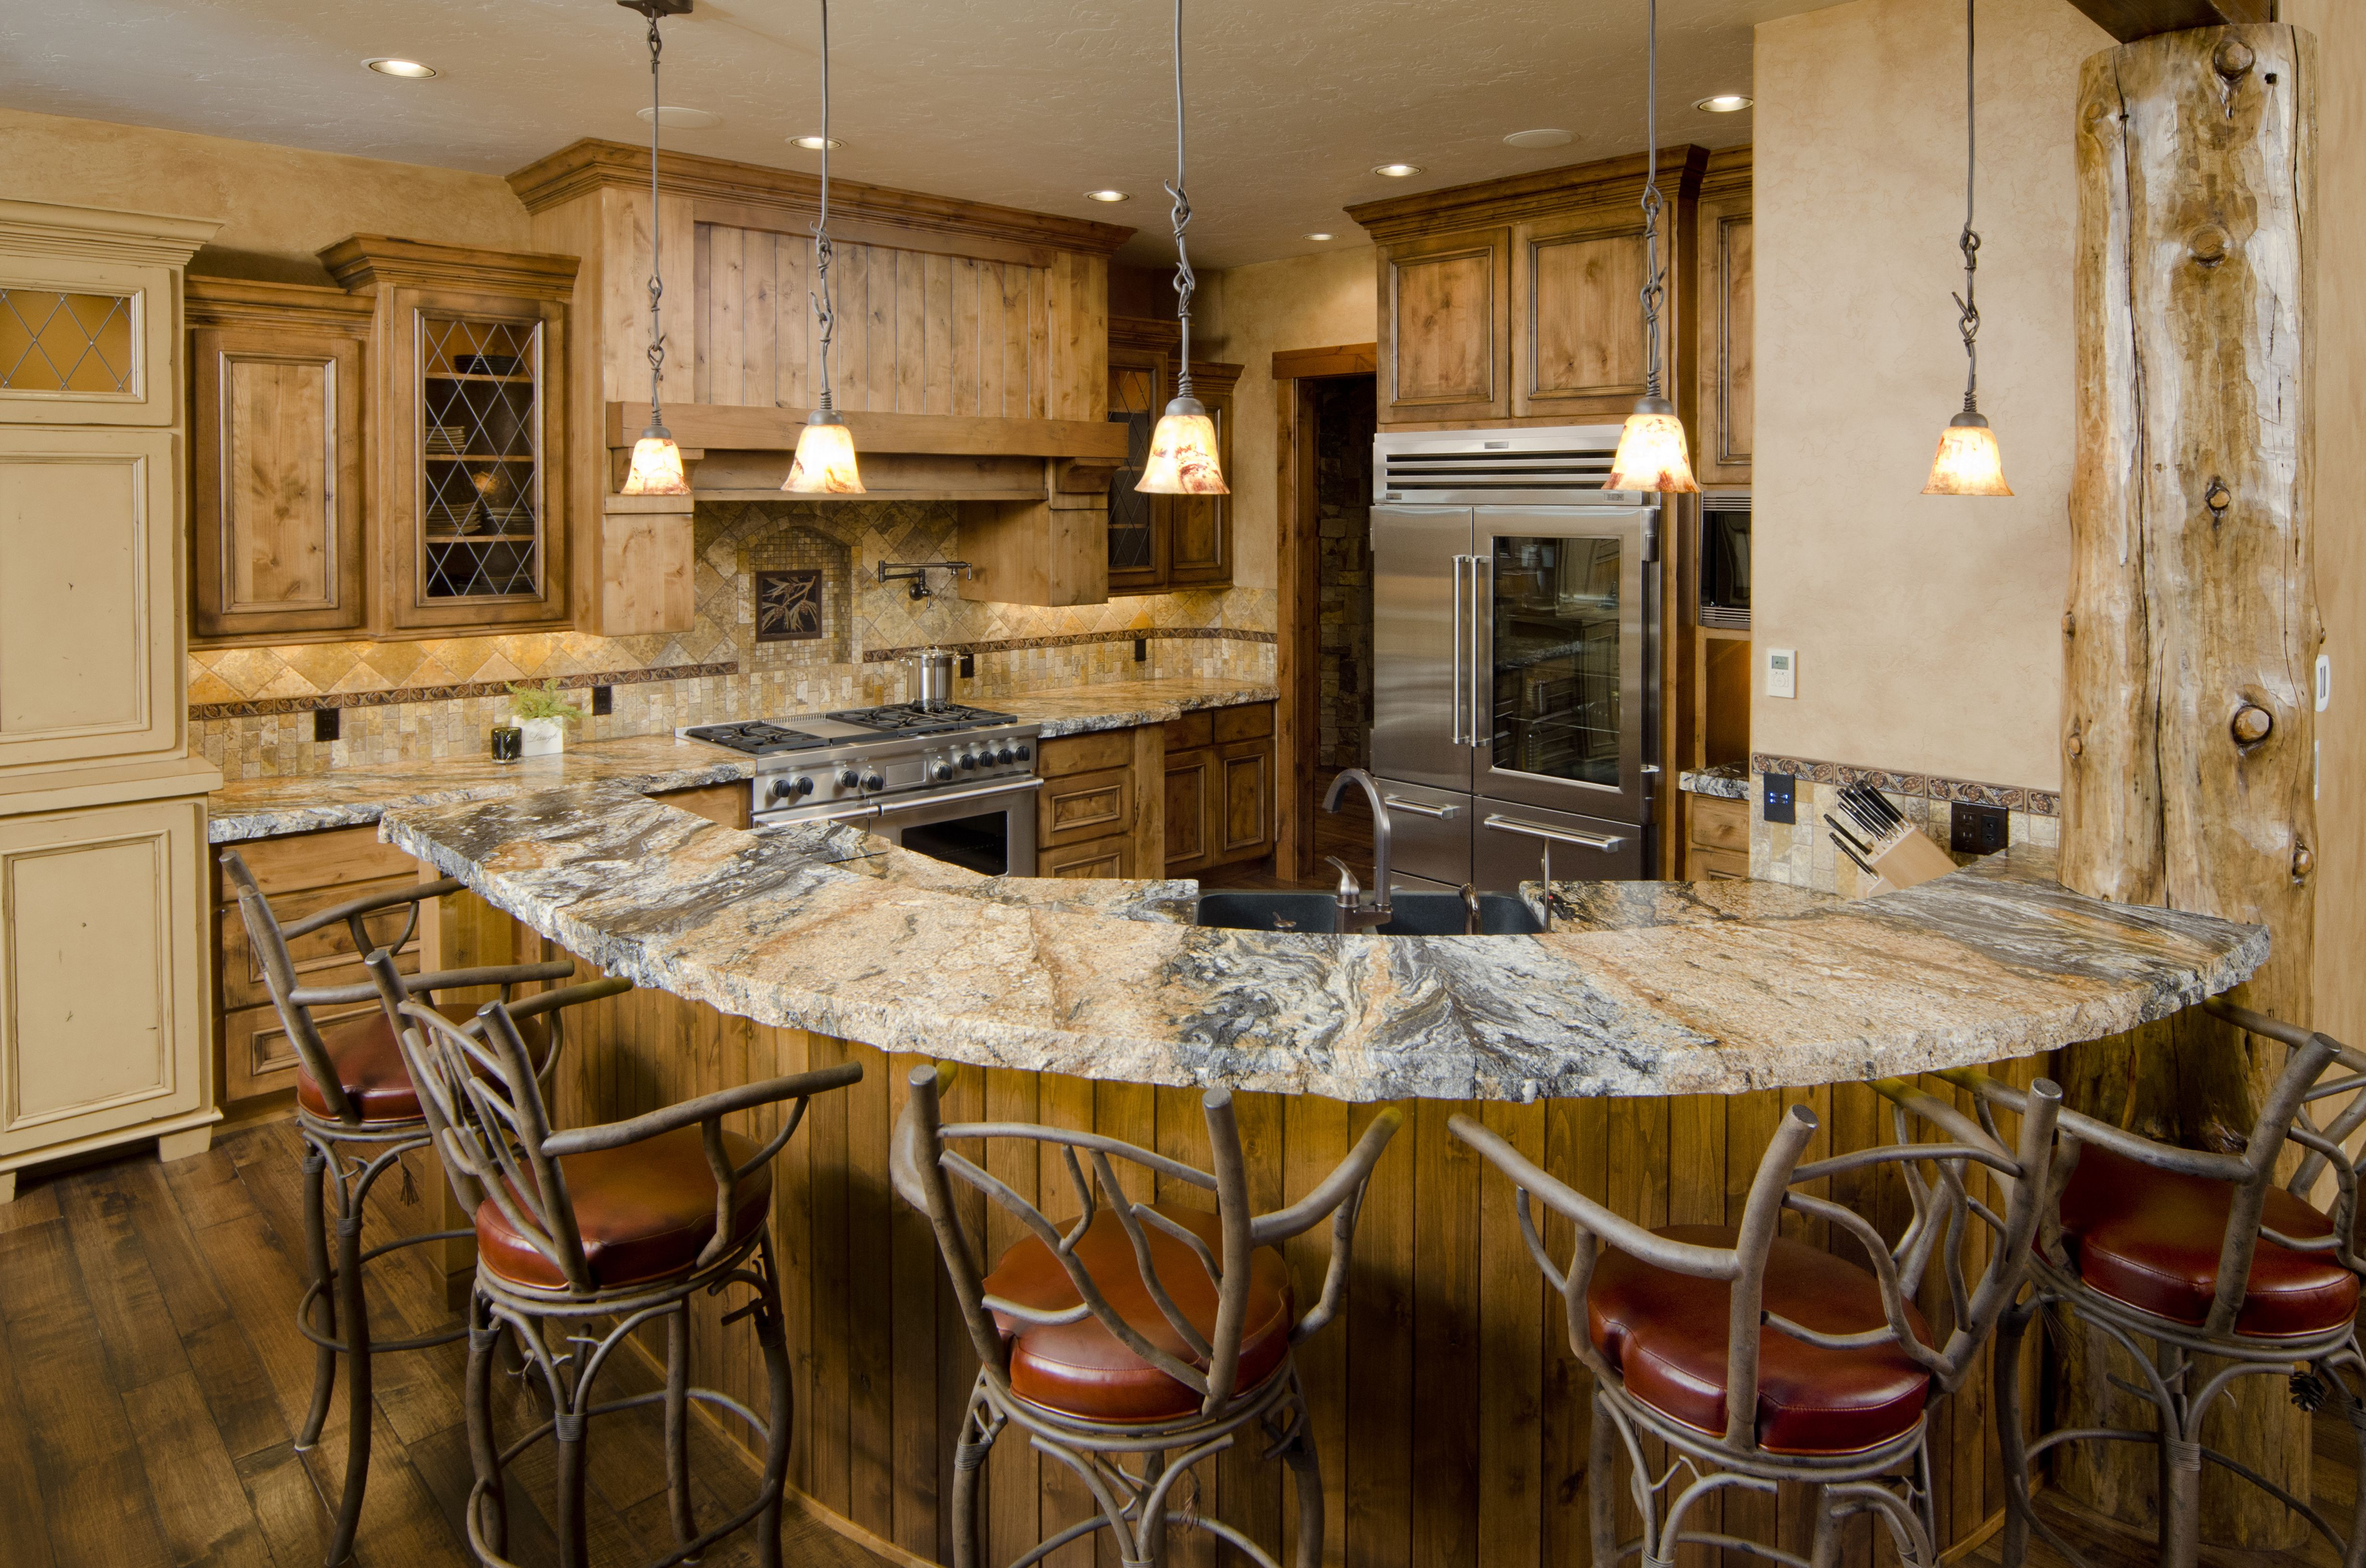 rustic painted hardwood floors of gorgeous kitchens with wooden flooring with regard to modern kitchen with rustic wood floor and curved bar 154946557 ross chandler 56a4a16c5f9b58b7d0d7e645